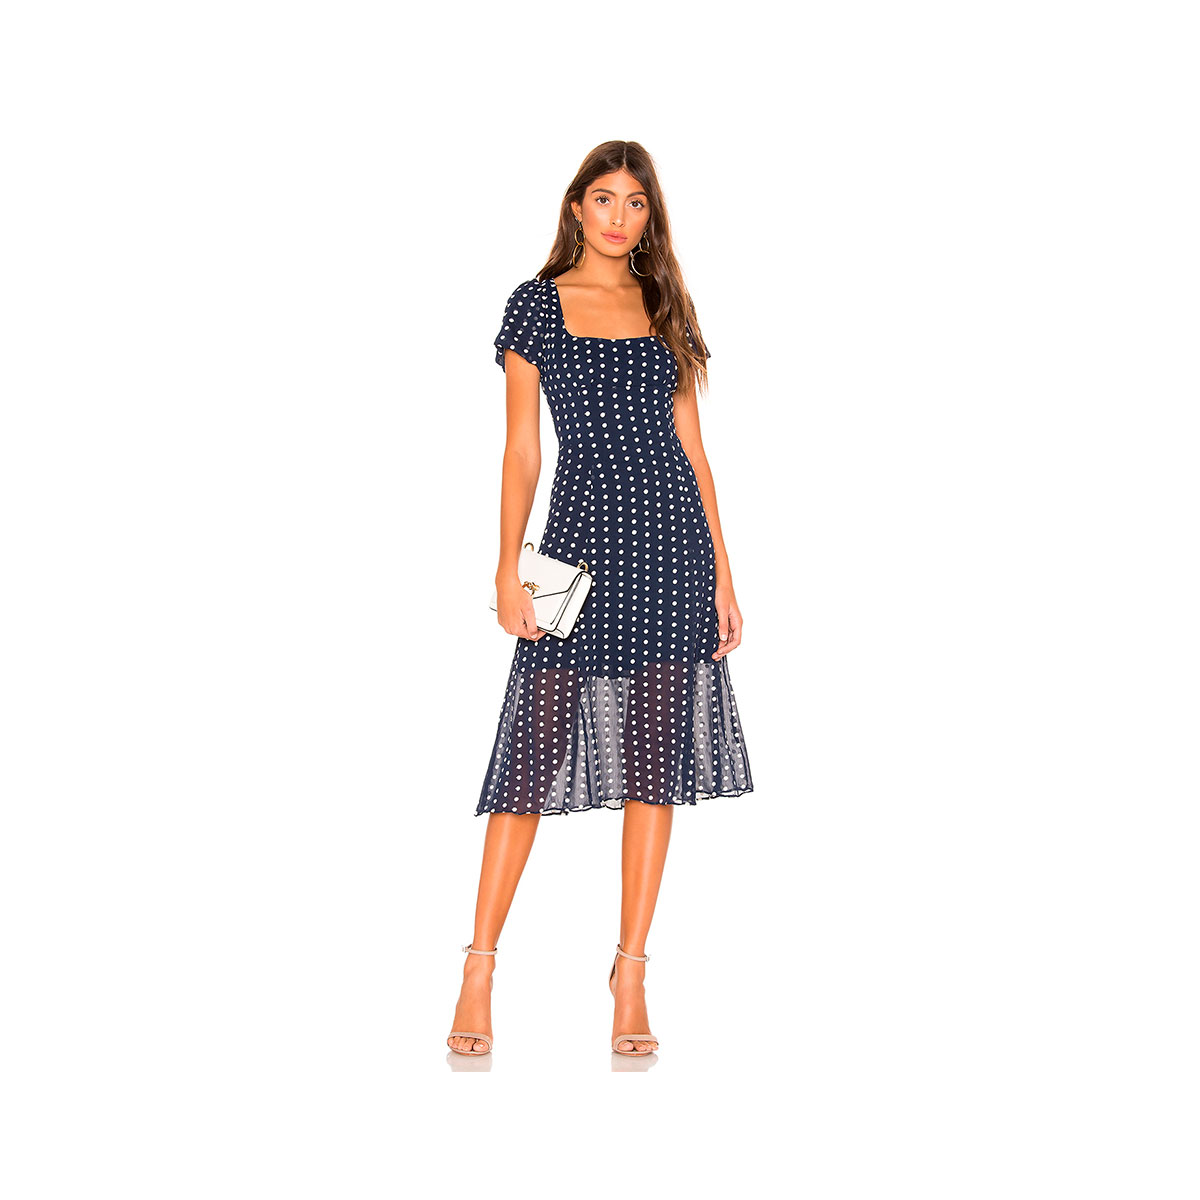 navy and white polka dot dress with short sleeves